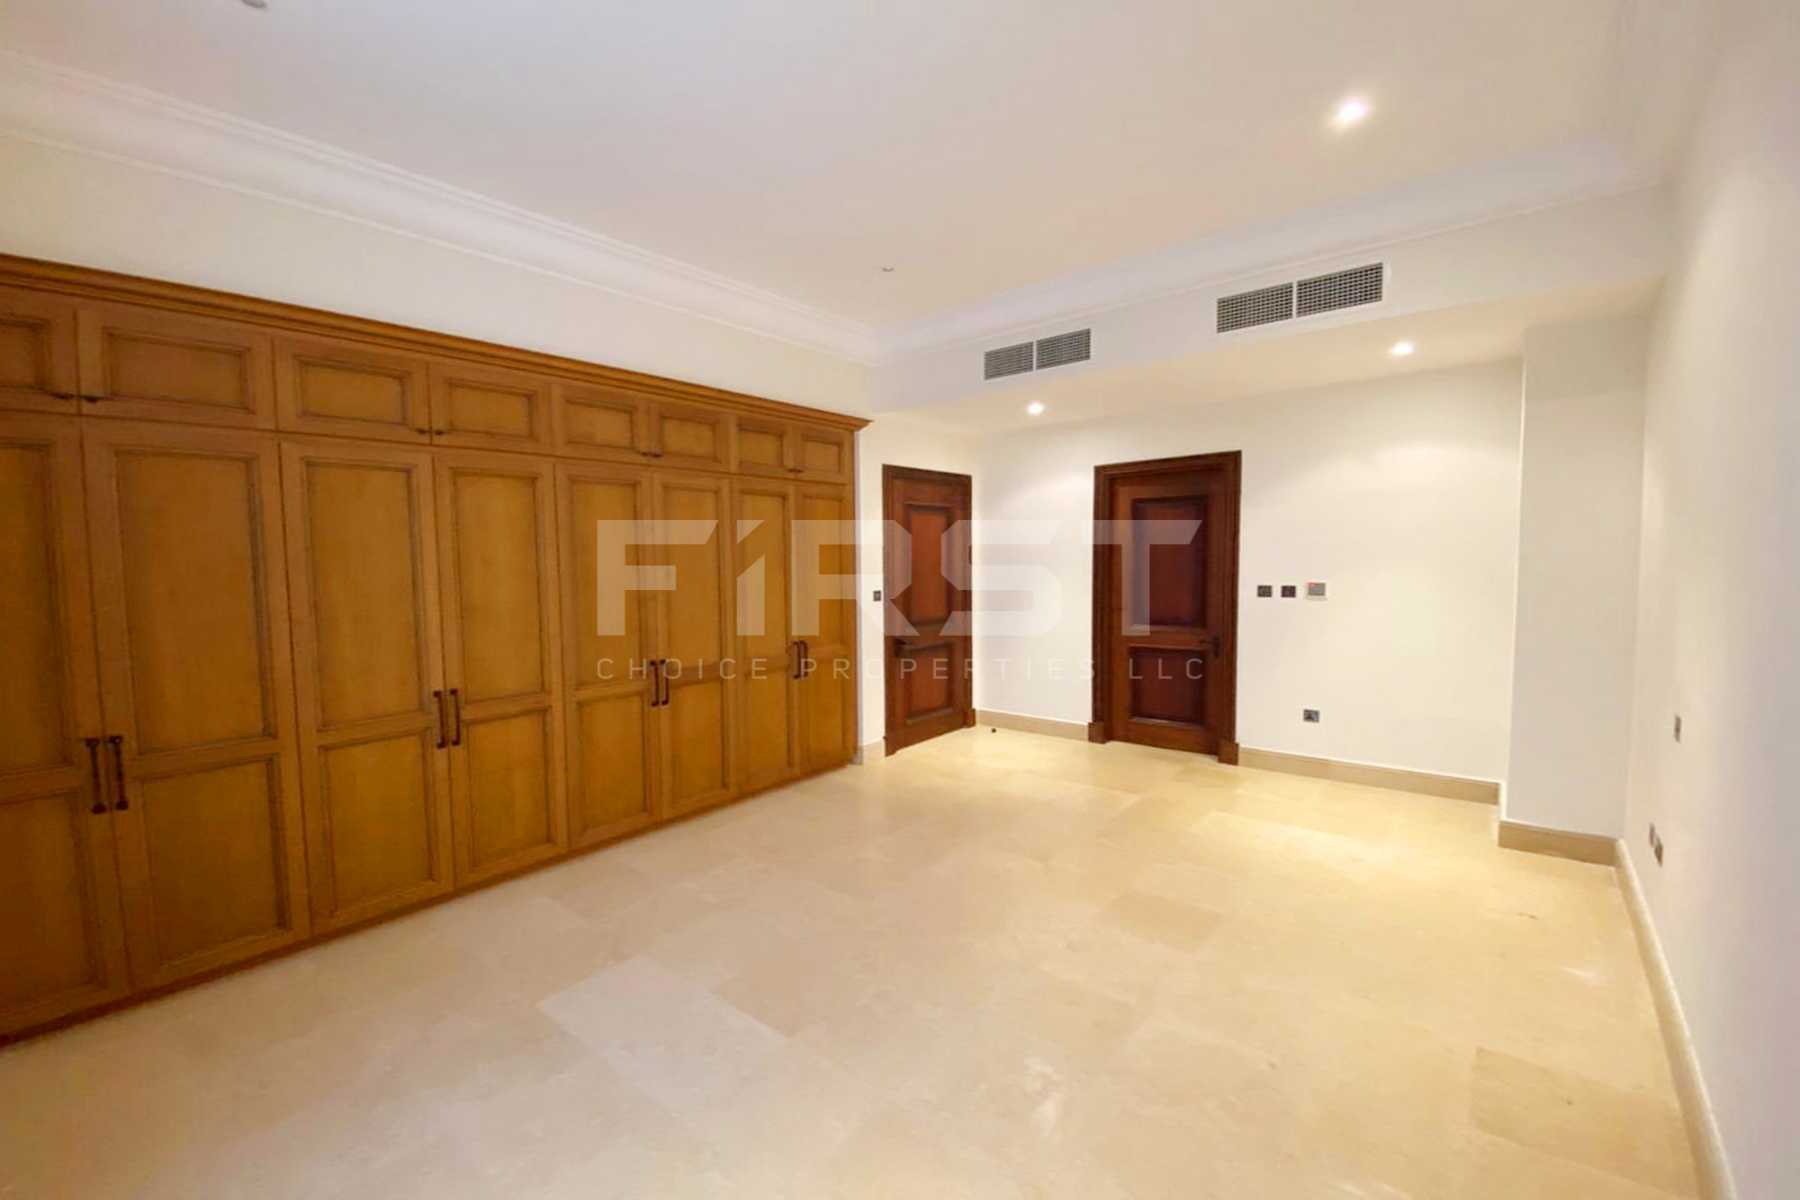 Internal Photo of 5 Bedroom Villa in Saadiyat Beach Villa in Saadiyat Island Abu Dhabi UAE (27).jpg